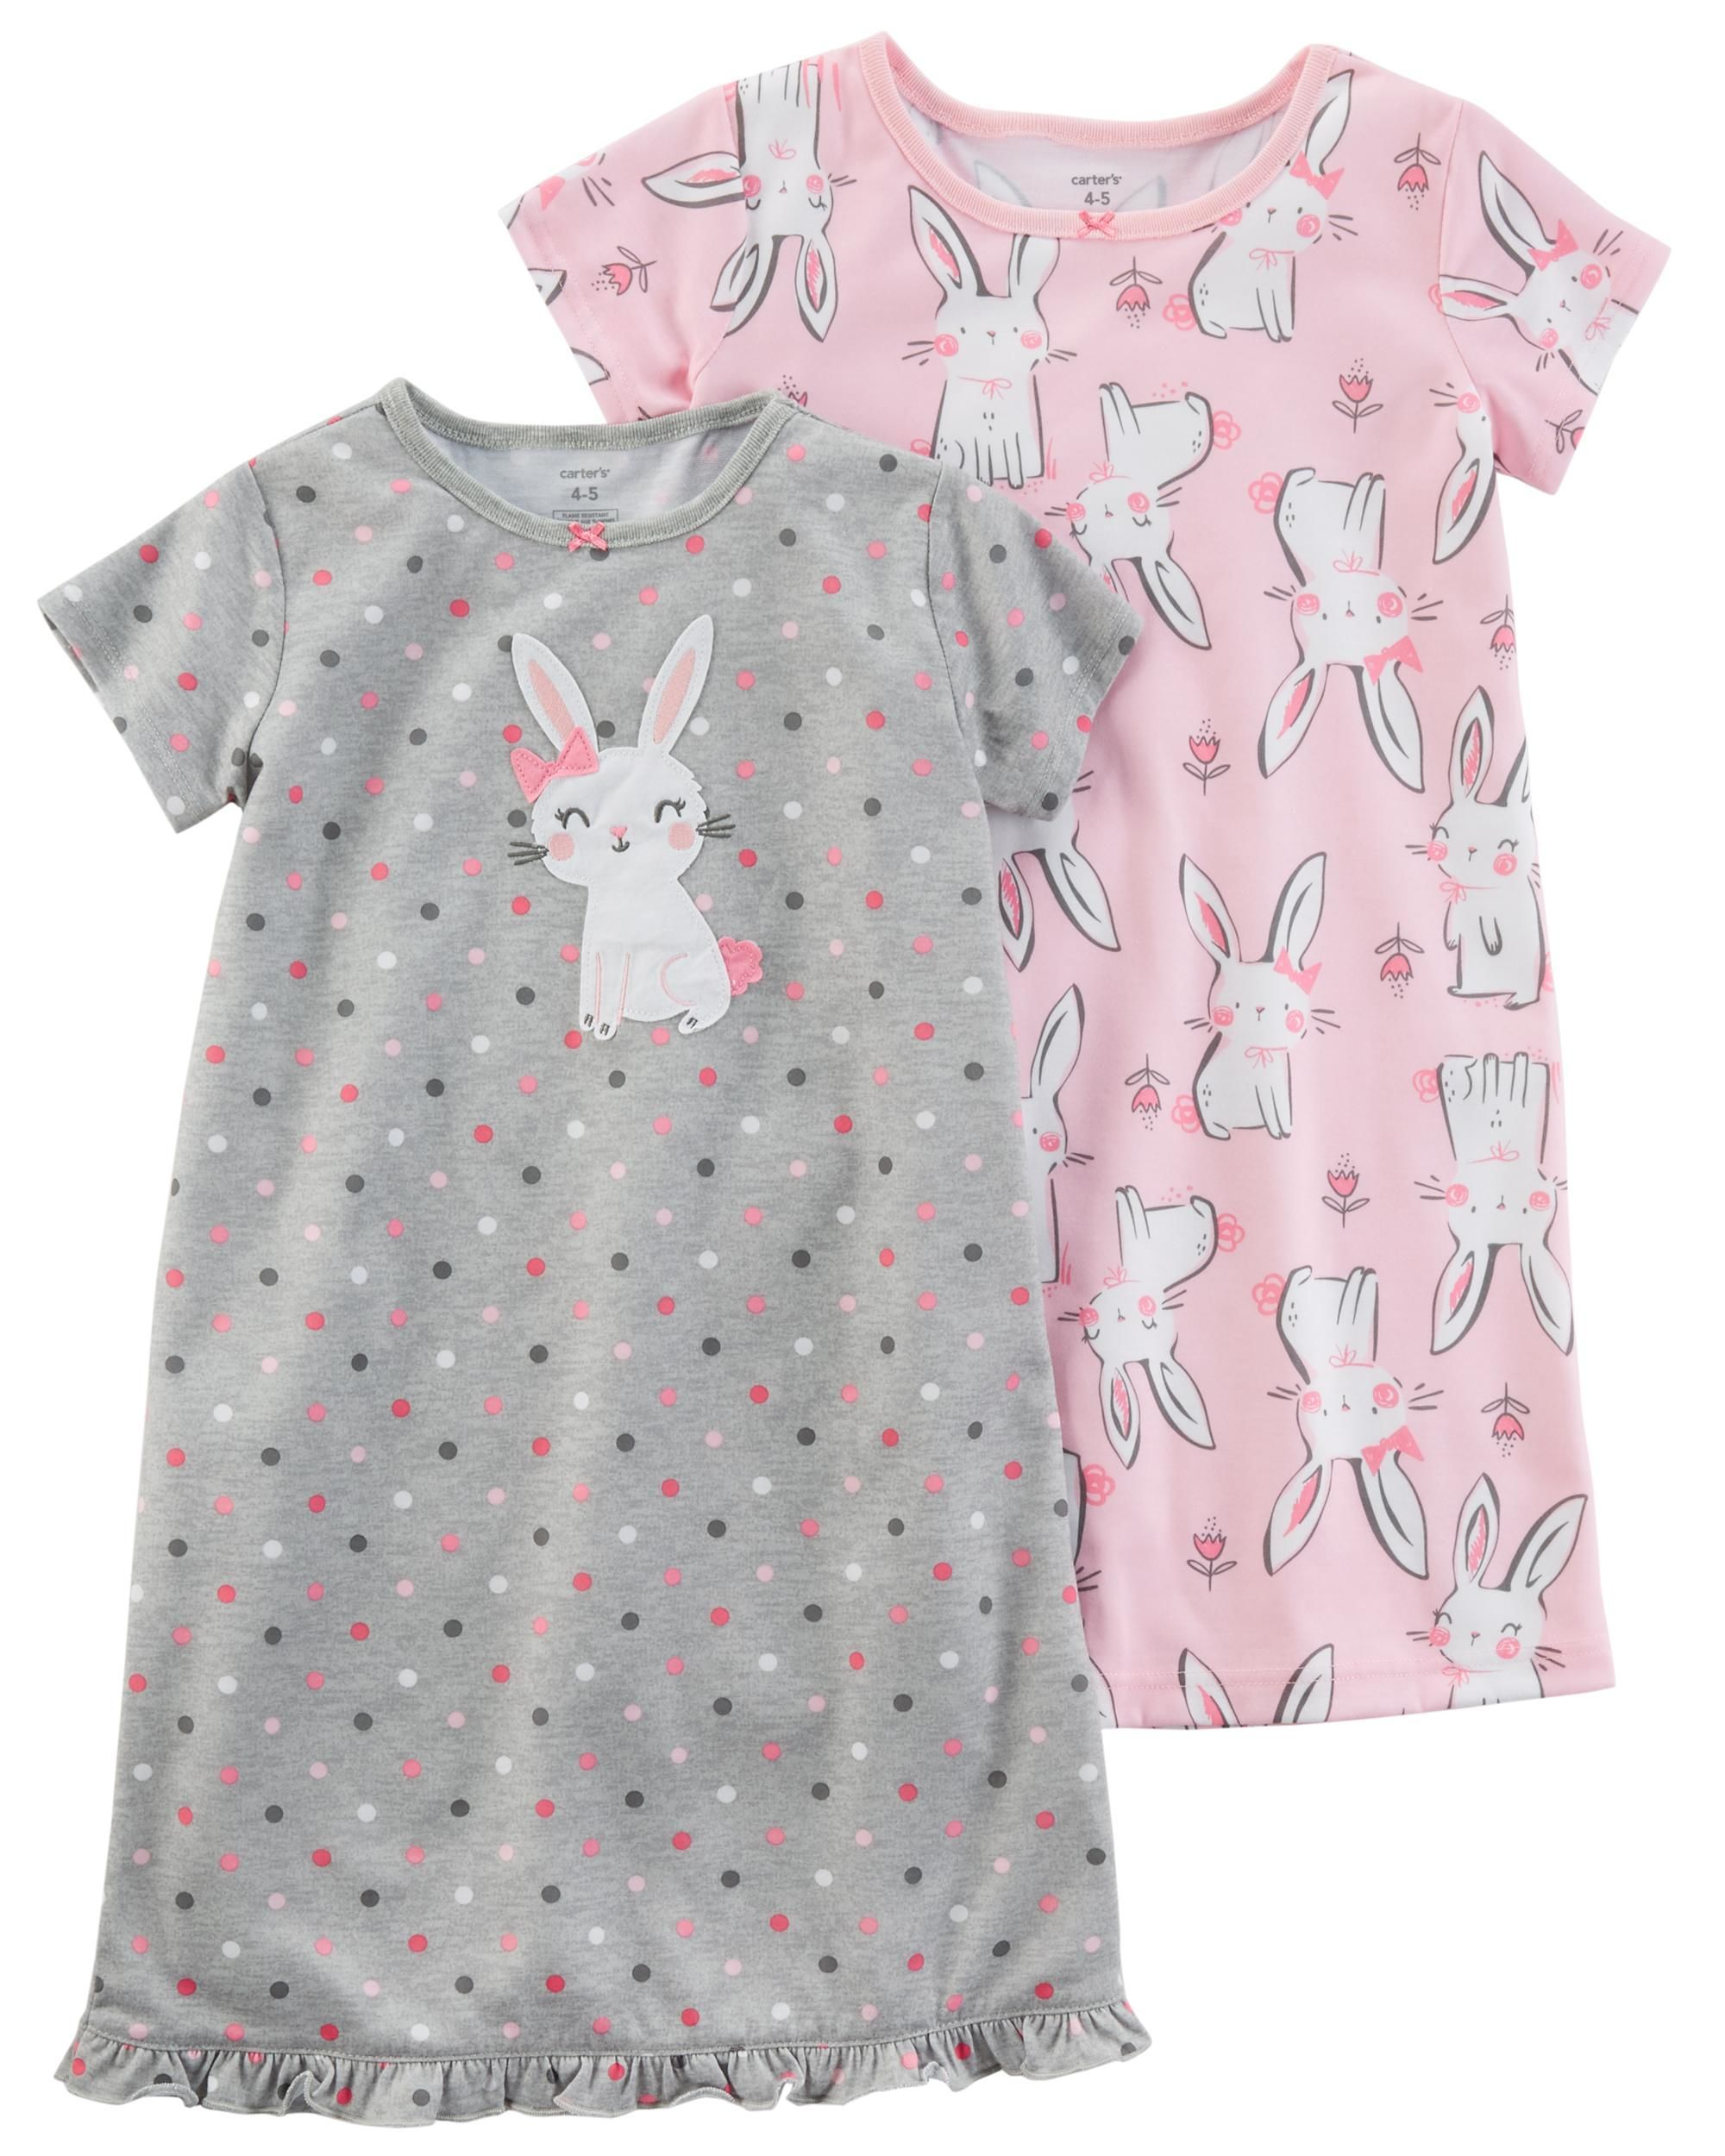 2-Pack Sleep Gowns | Satin bows, Toddler girls and Babies